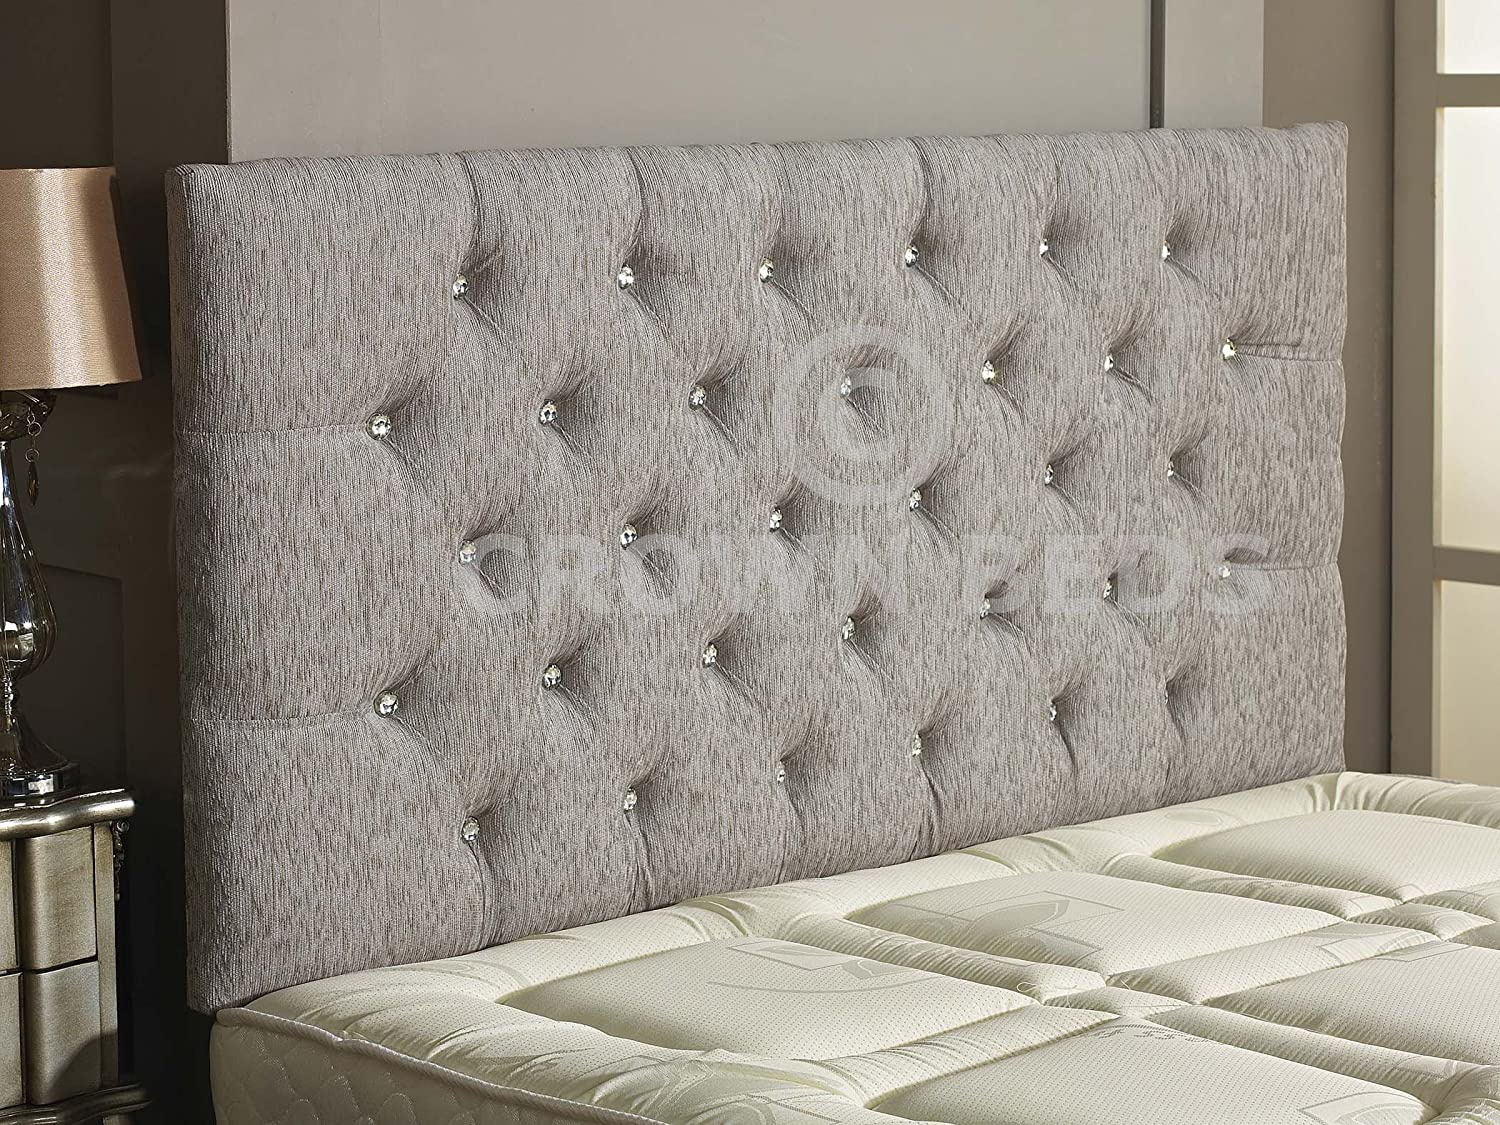 CROWNBEDSUK CHESTERFIELD DIAMANTE BUTTON HEADBOARD IN 2ft6,3ft,4ft,4ft6,5ft,6ft !!!!NEW!!!! (IVORY, 2FT6 (SMALL SINGLE) DIAMANTE)